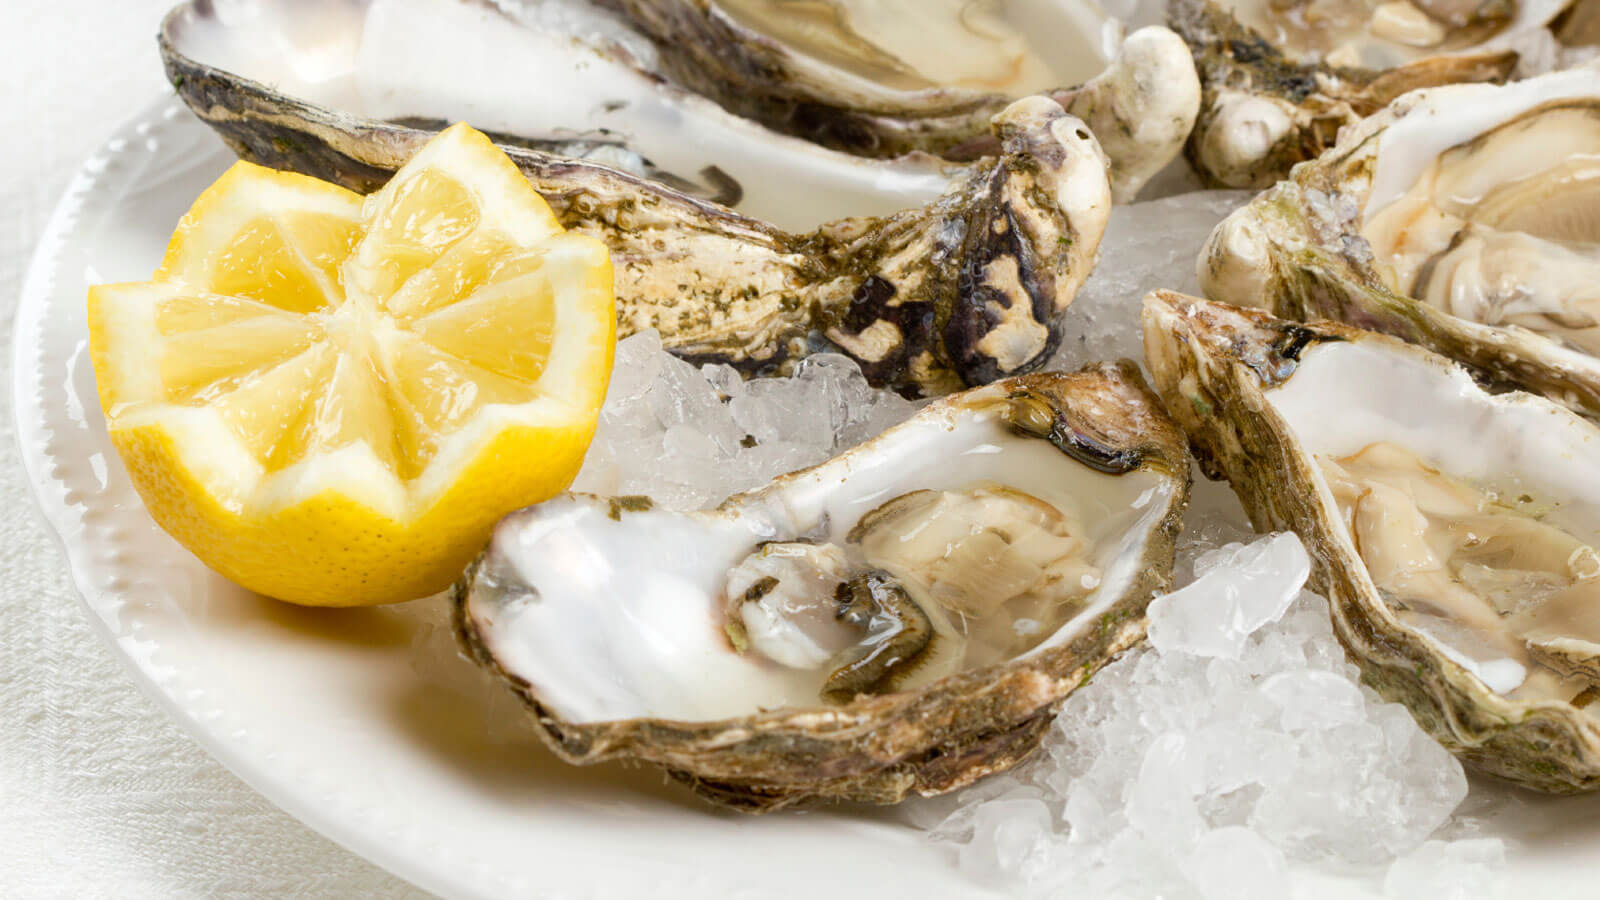 In-Shell Chesapeake Oysters, 12 ct